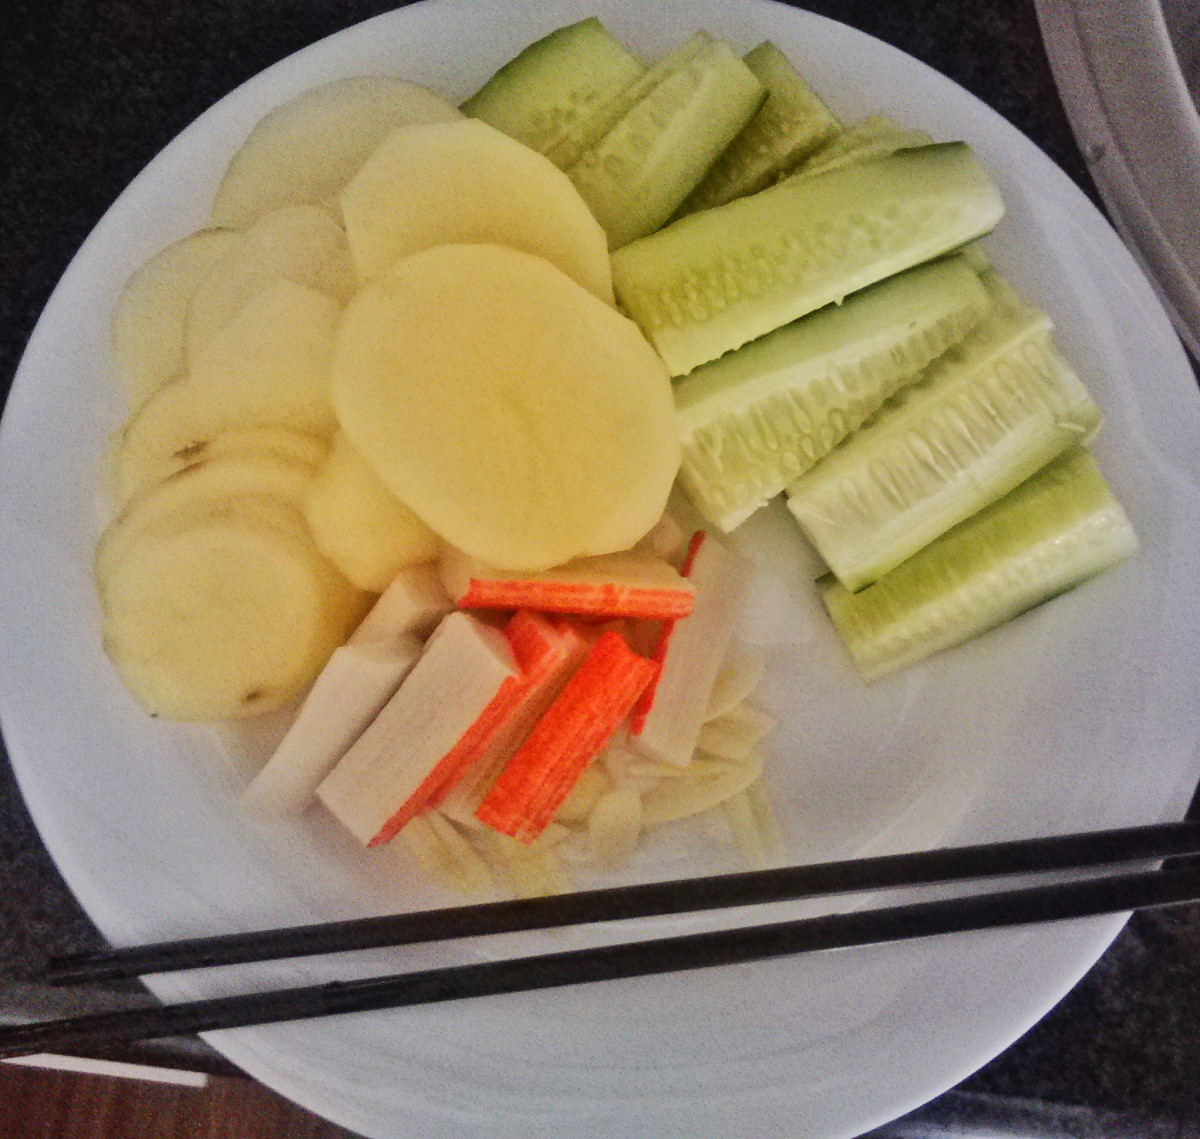 This how my Chinese friend sliced the potato, it's so thin that it will cook in 2 minutes. She also sliced crab sticks and luffa gourd.